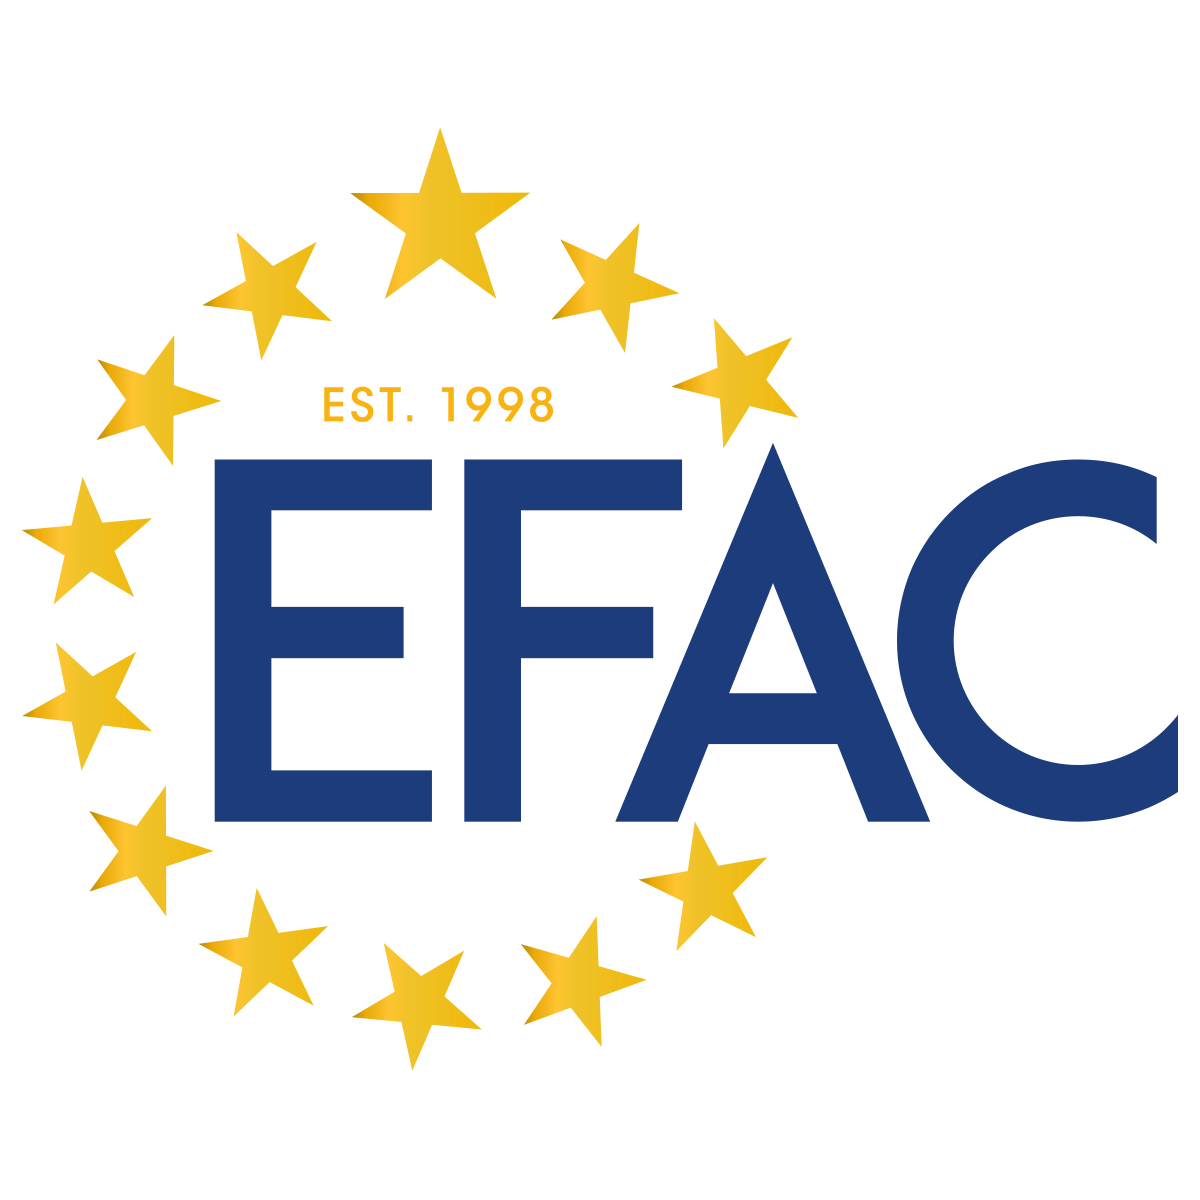 EFAC - European Federation of Associations of Certification Bodies